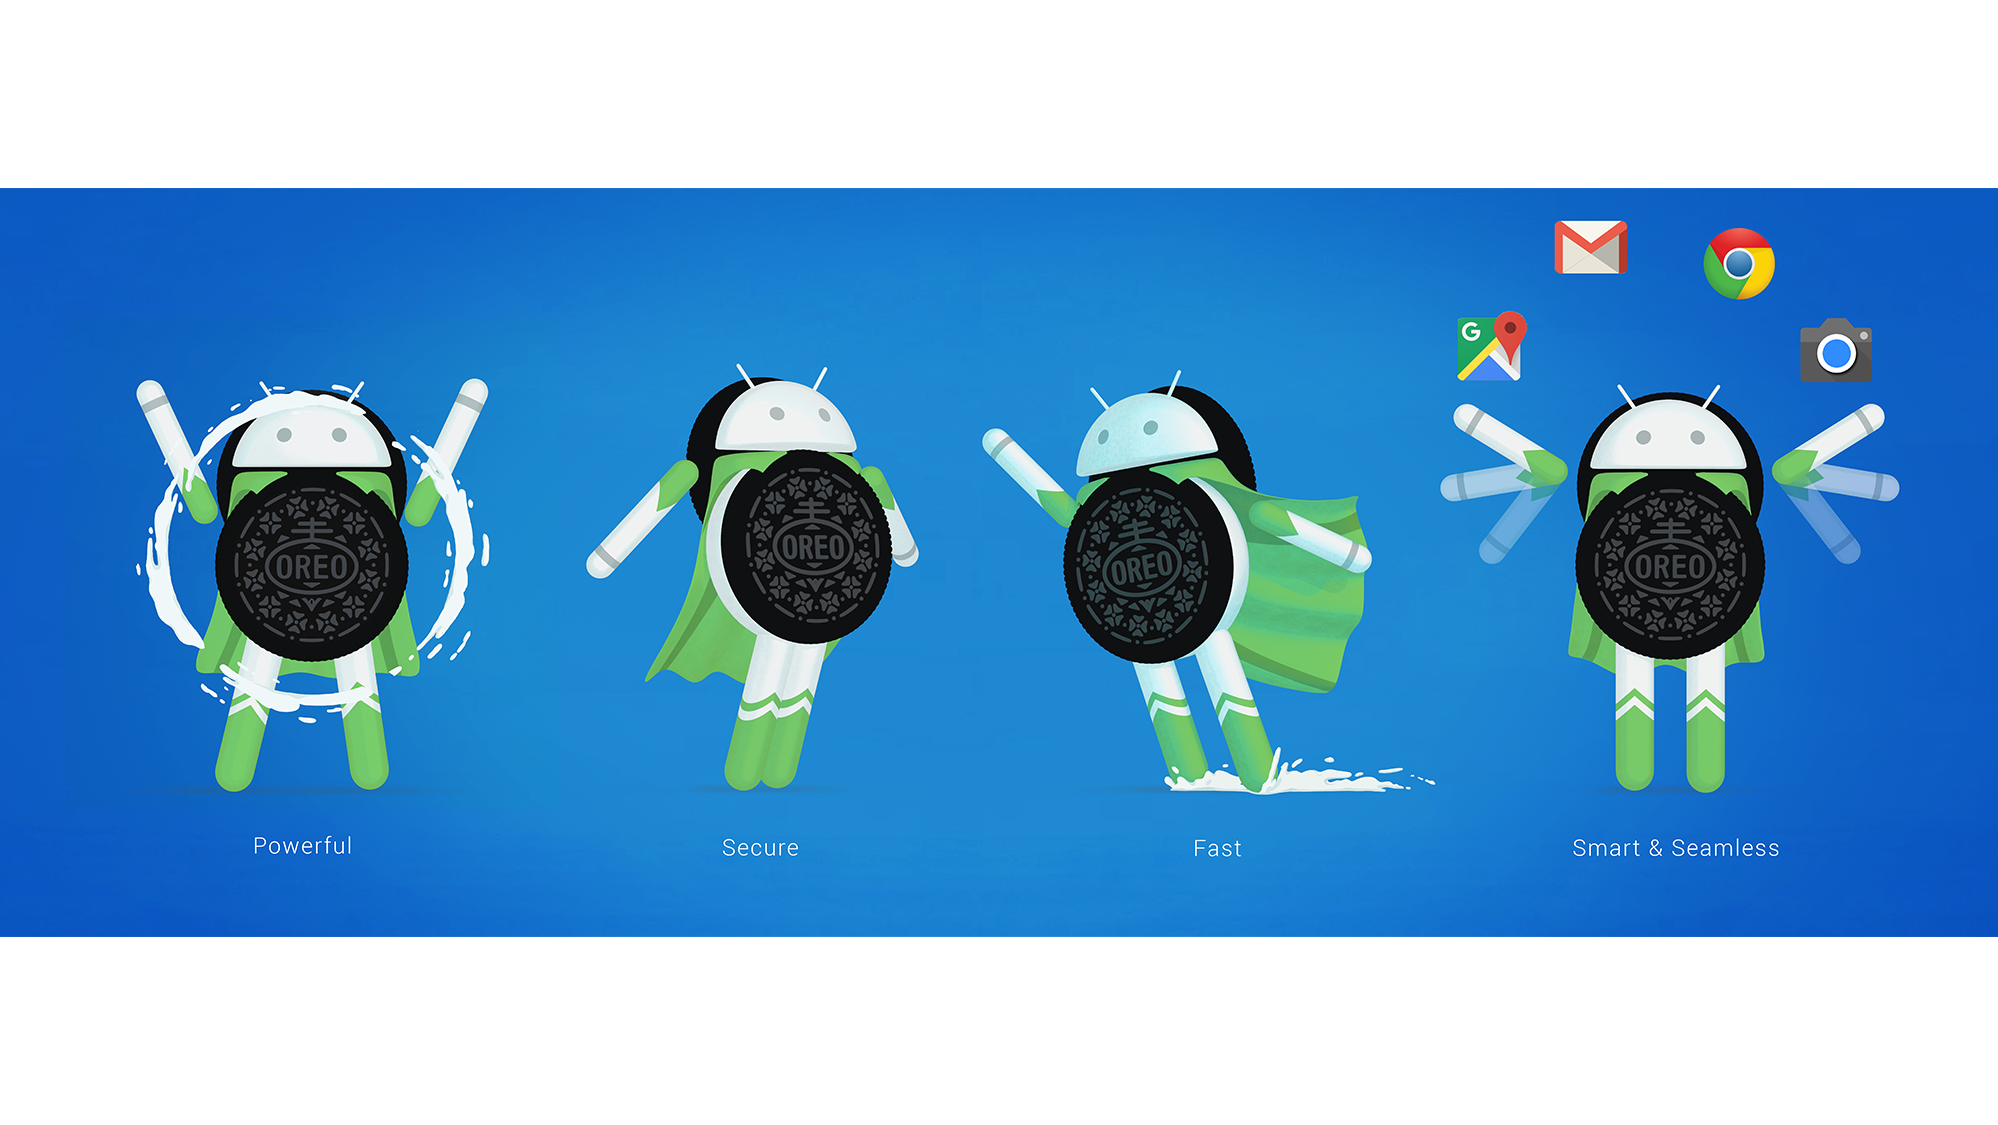 Android O Is Officially Android 8.0 Oreo - When Can You Get It?